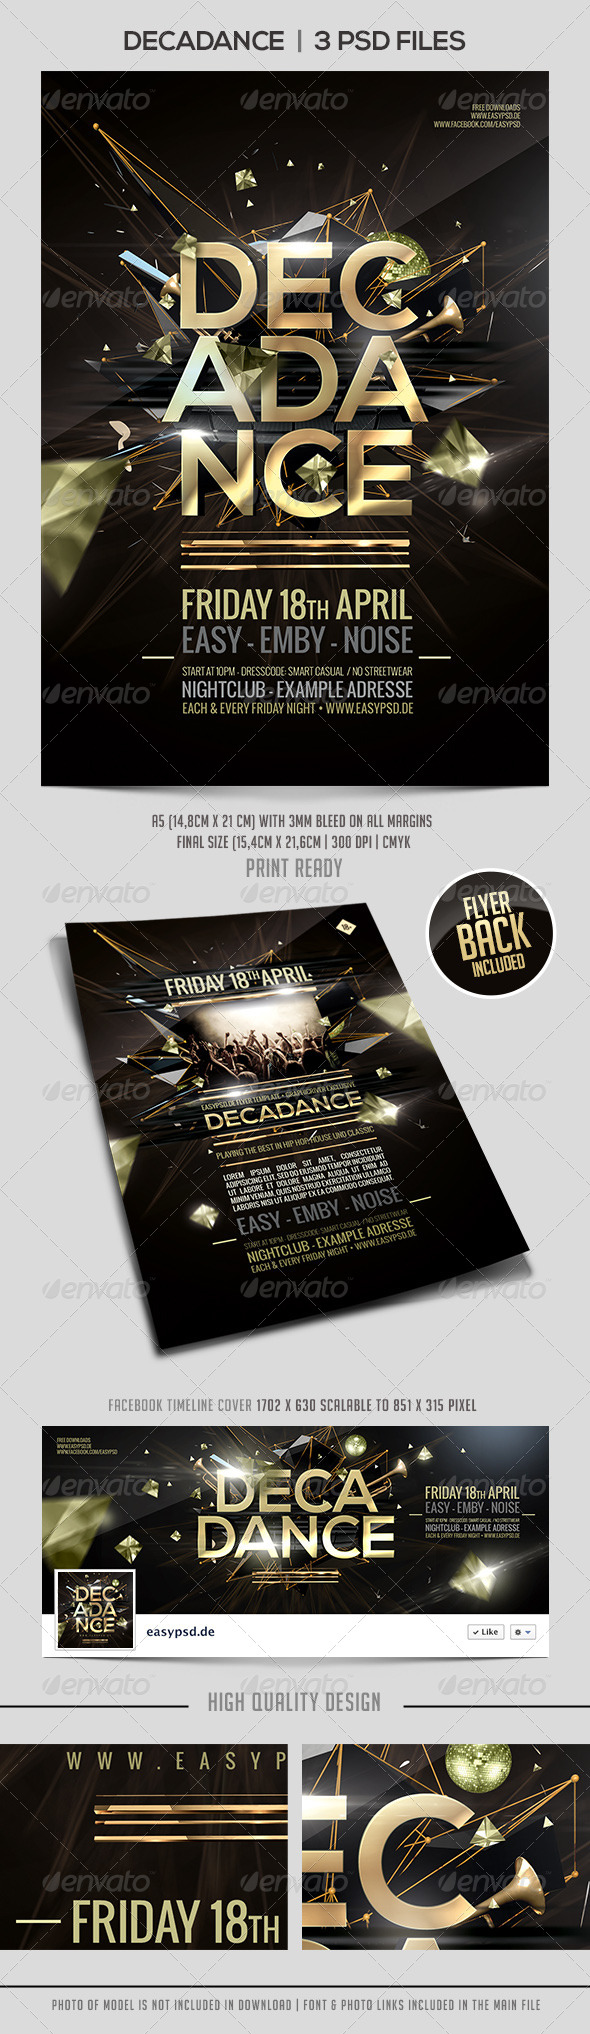 GraphicRiver Decadance Flyer Template 7686755